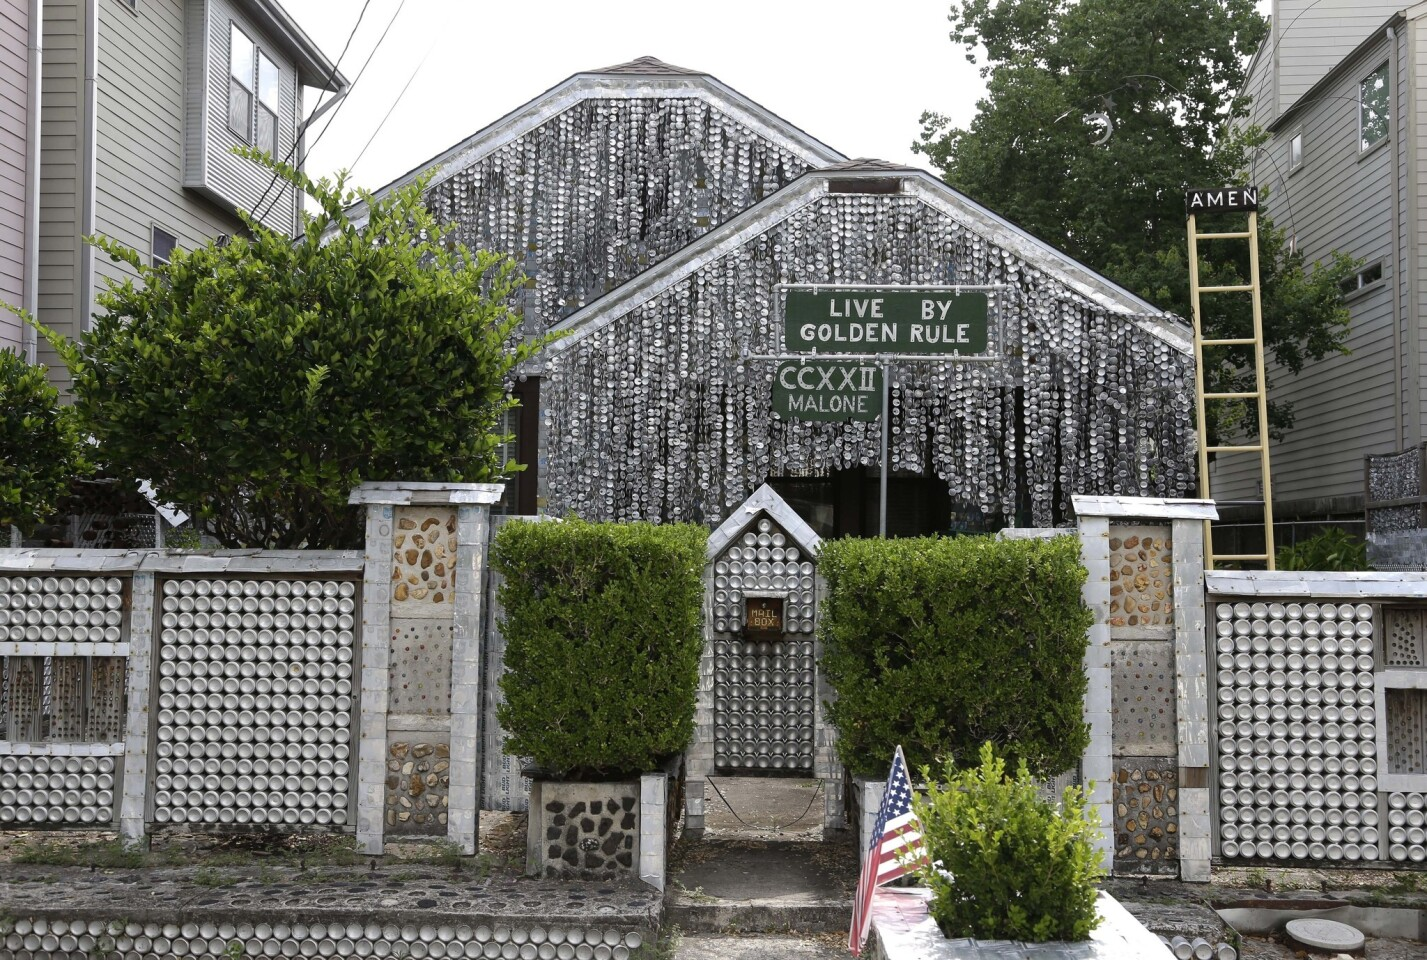 The Beer Can House, a Houston landmark, sits between newer homes.